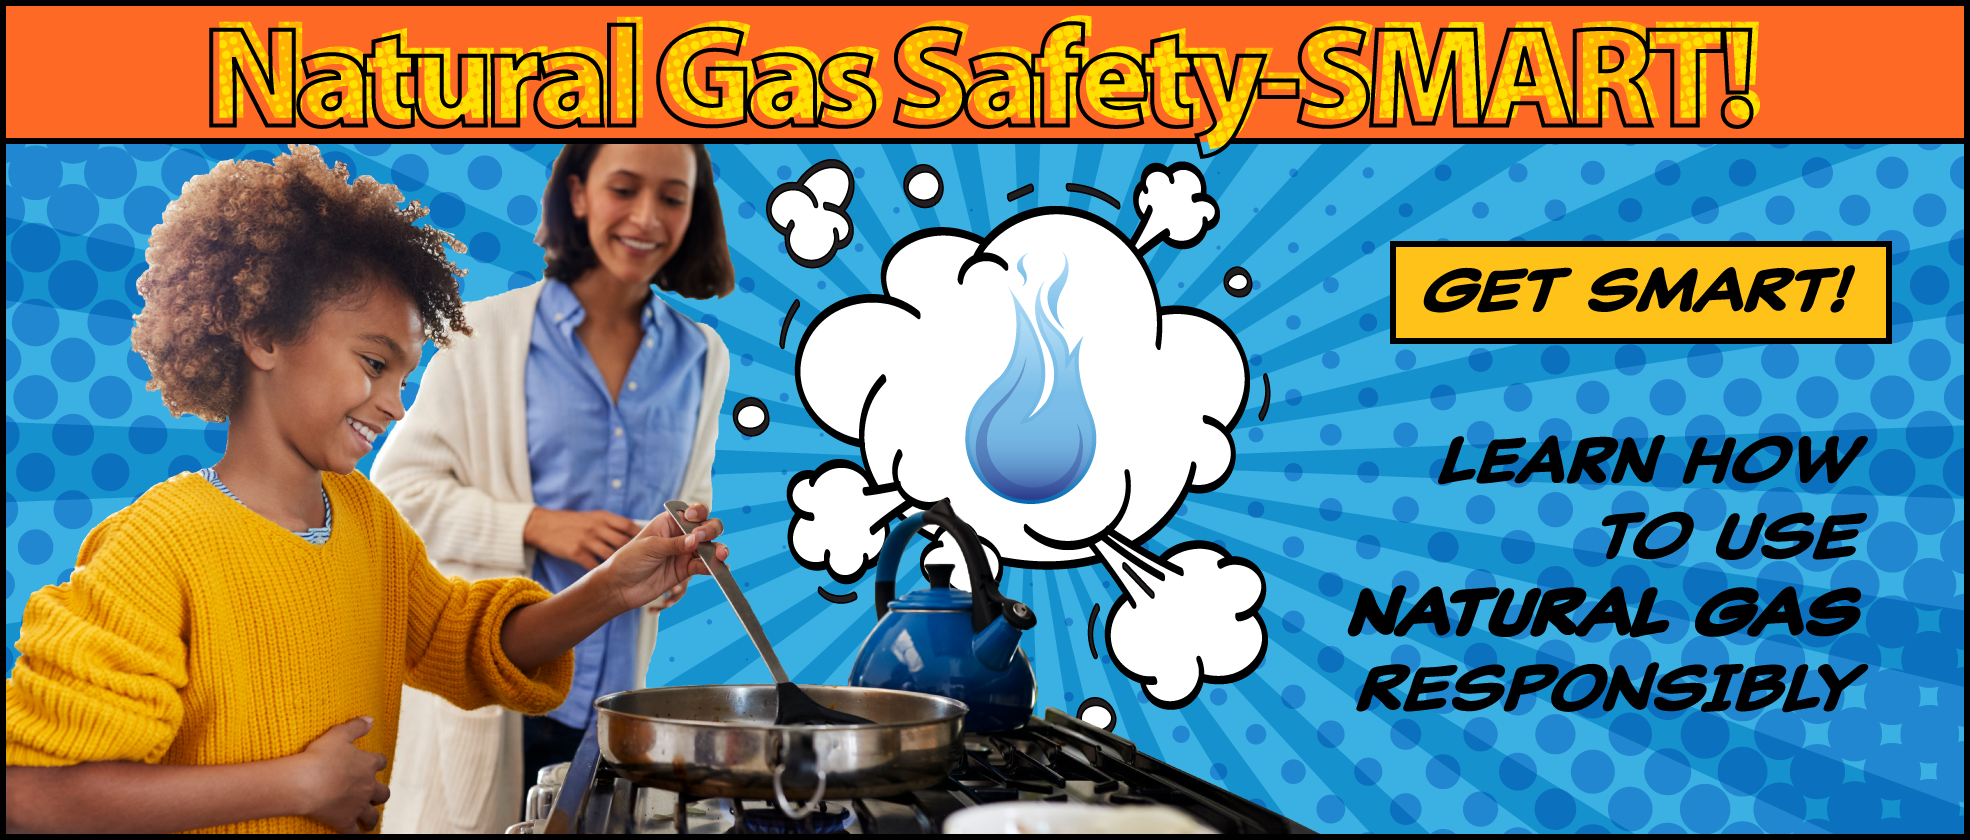 66710 Nat Gas Safety SMART hmpg carousel 1970x840 1